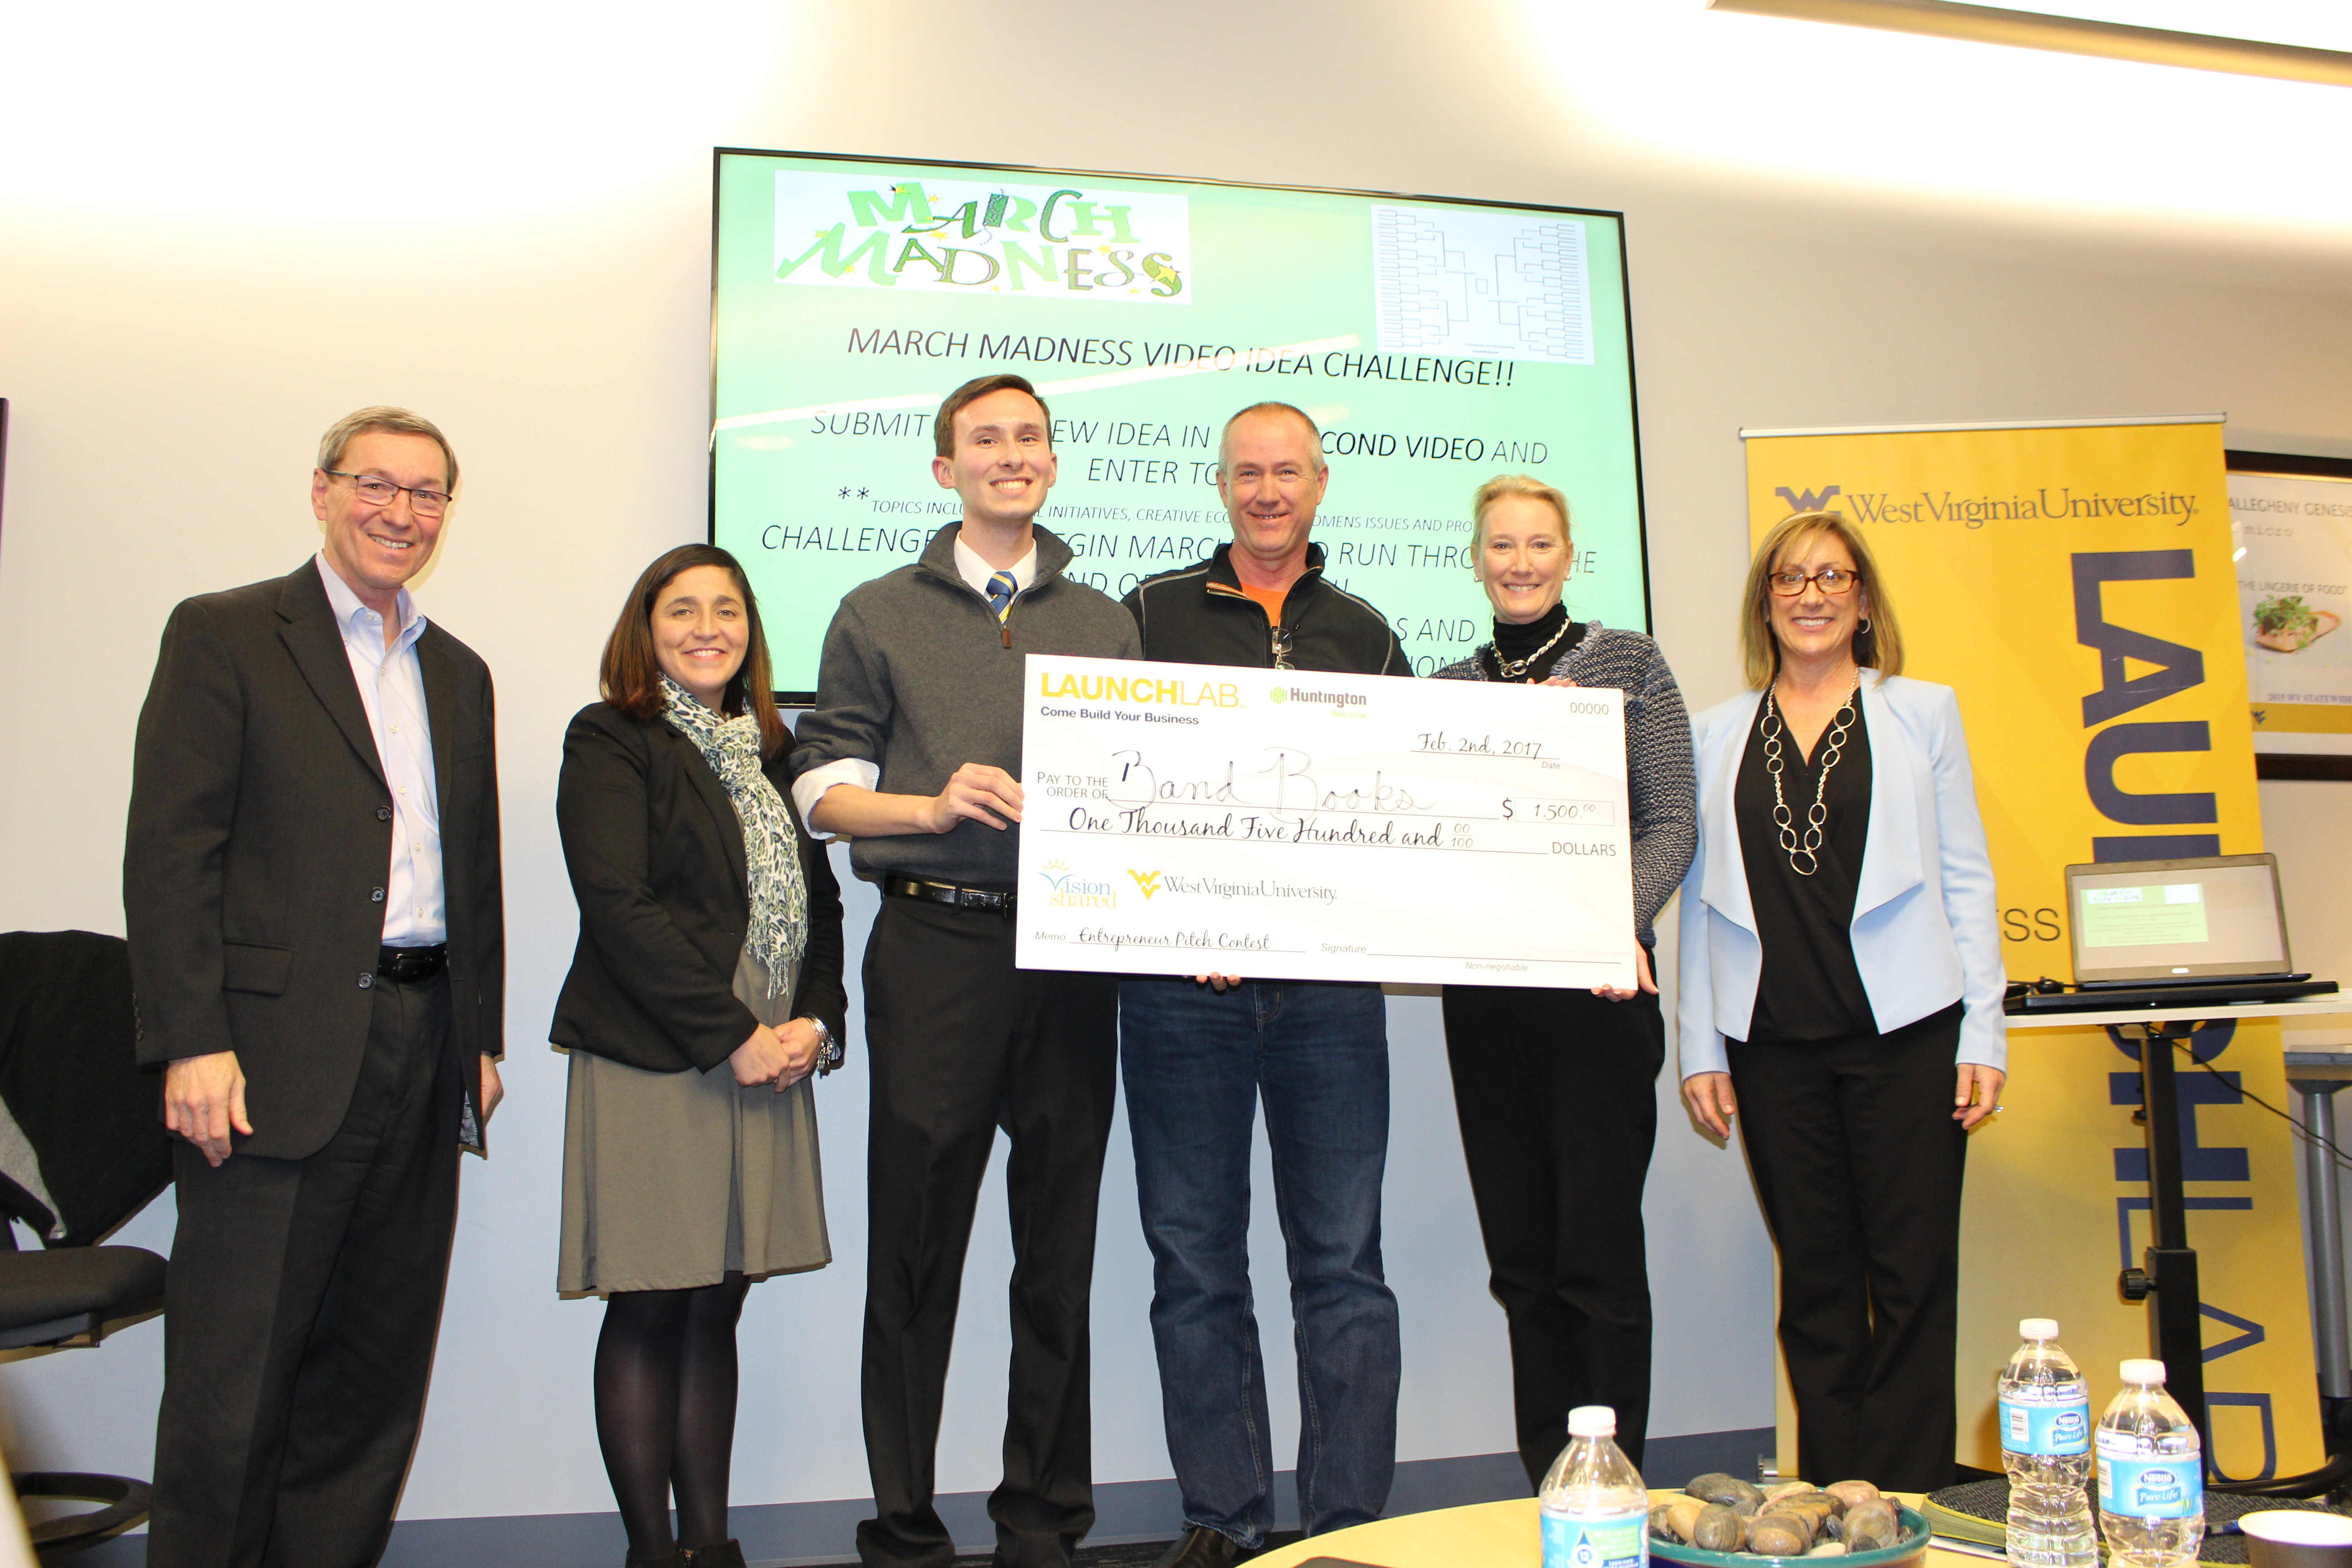 Wvu Engineering Student Wins Entrepreneur Pitch Contest